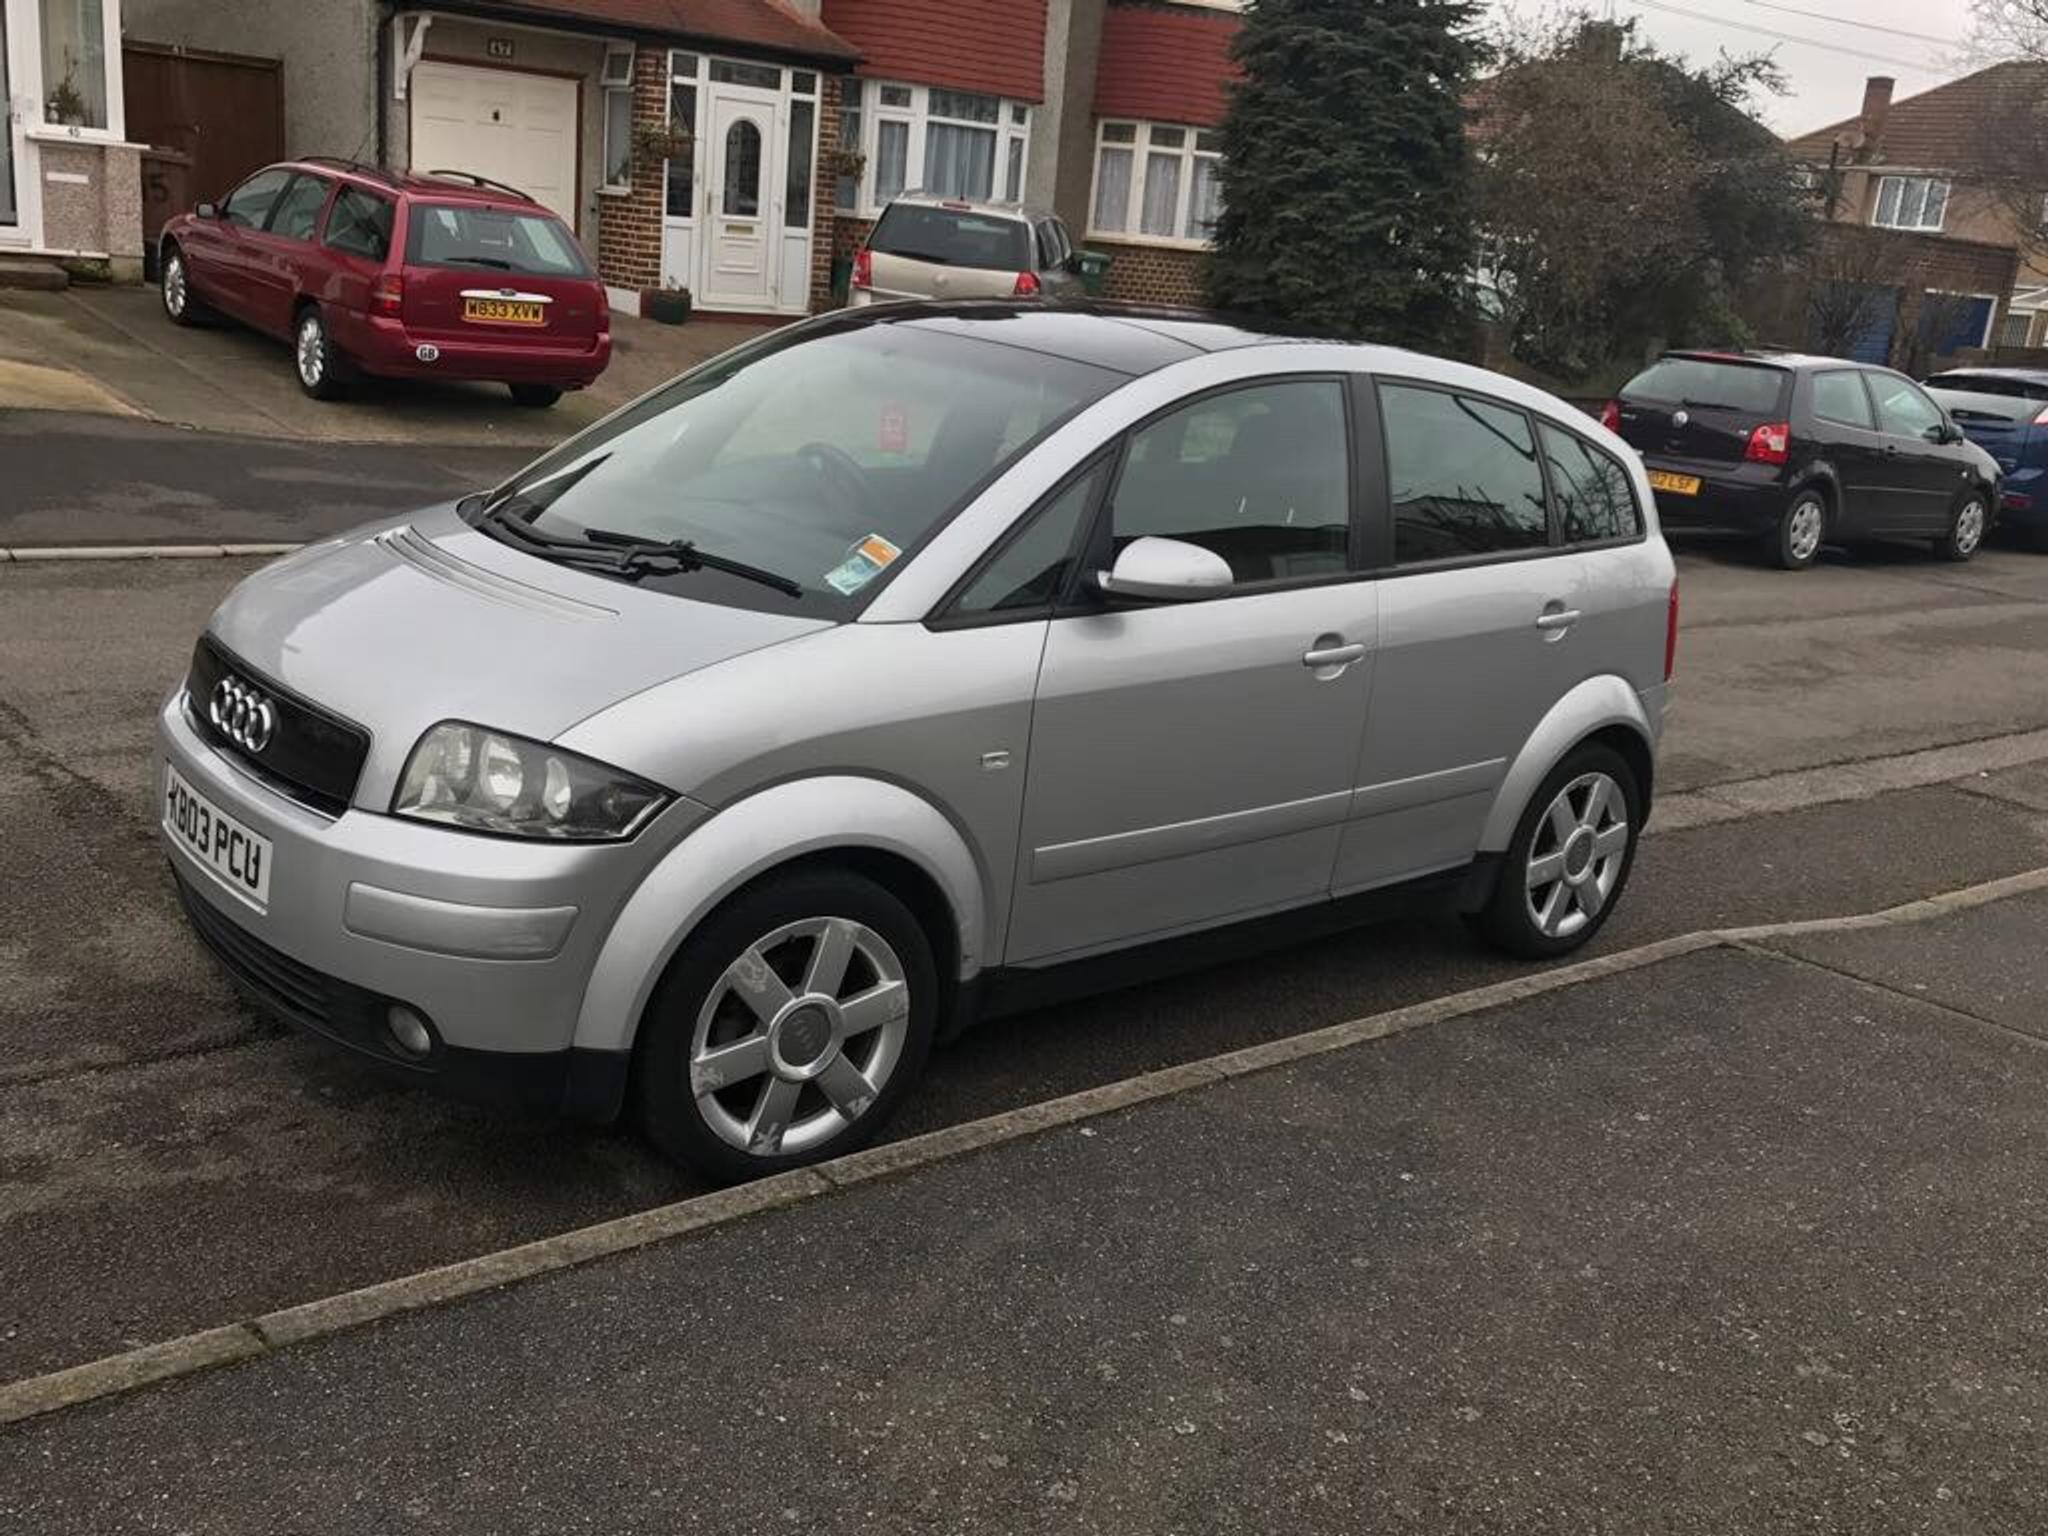 Audi For Sale >> Audi A2 For Sale 950